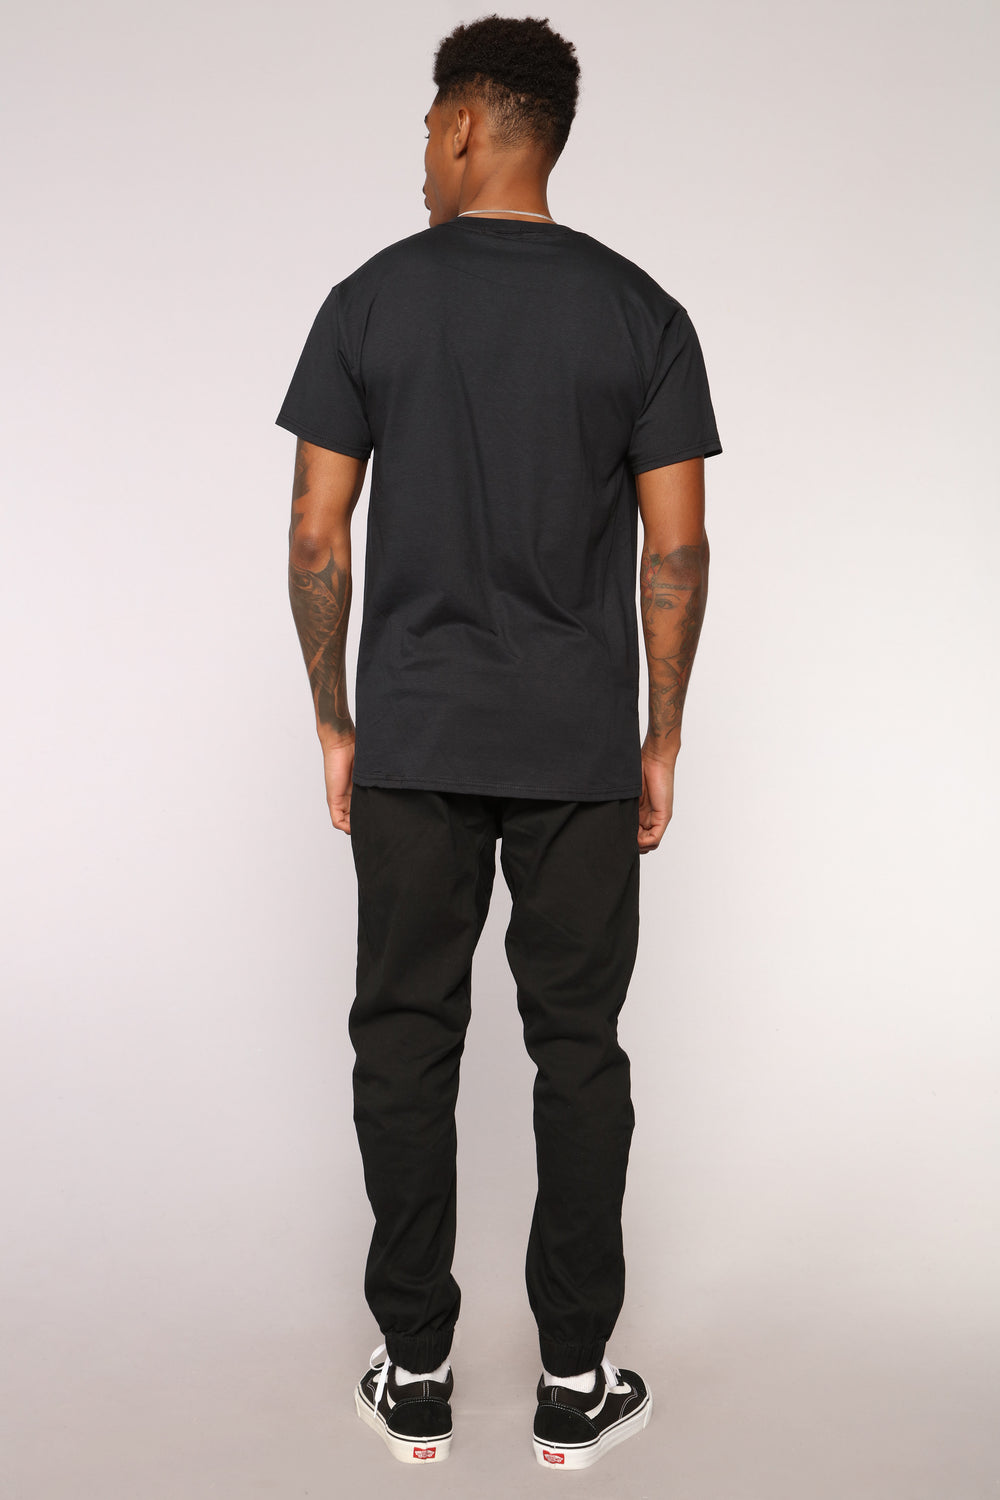 Teen Spirit Tee - Black/Combo